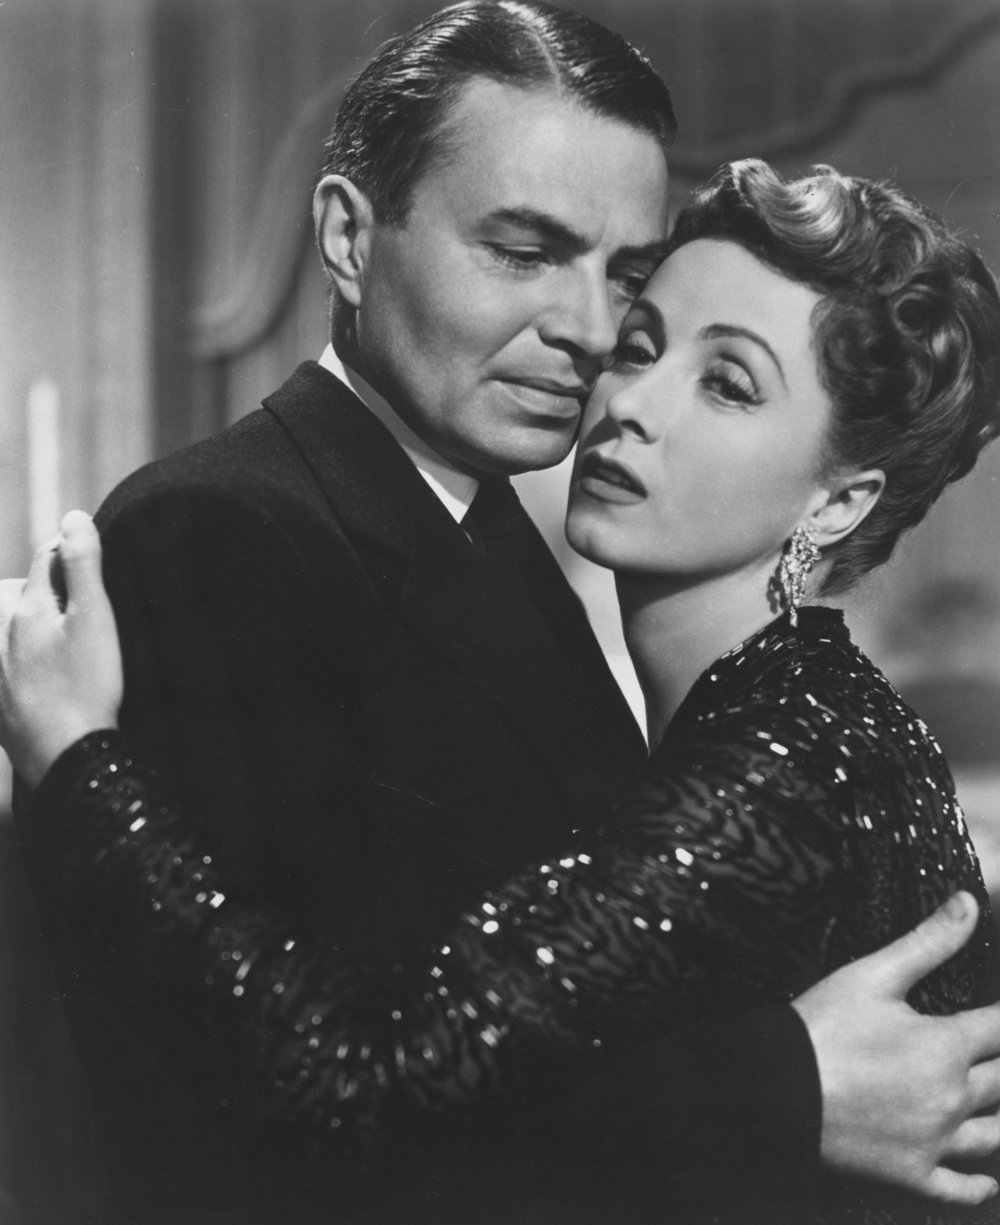 James Mason and Danielle Darrieux in Five Fingers (1952)